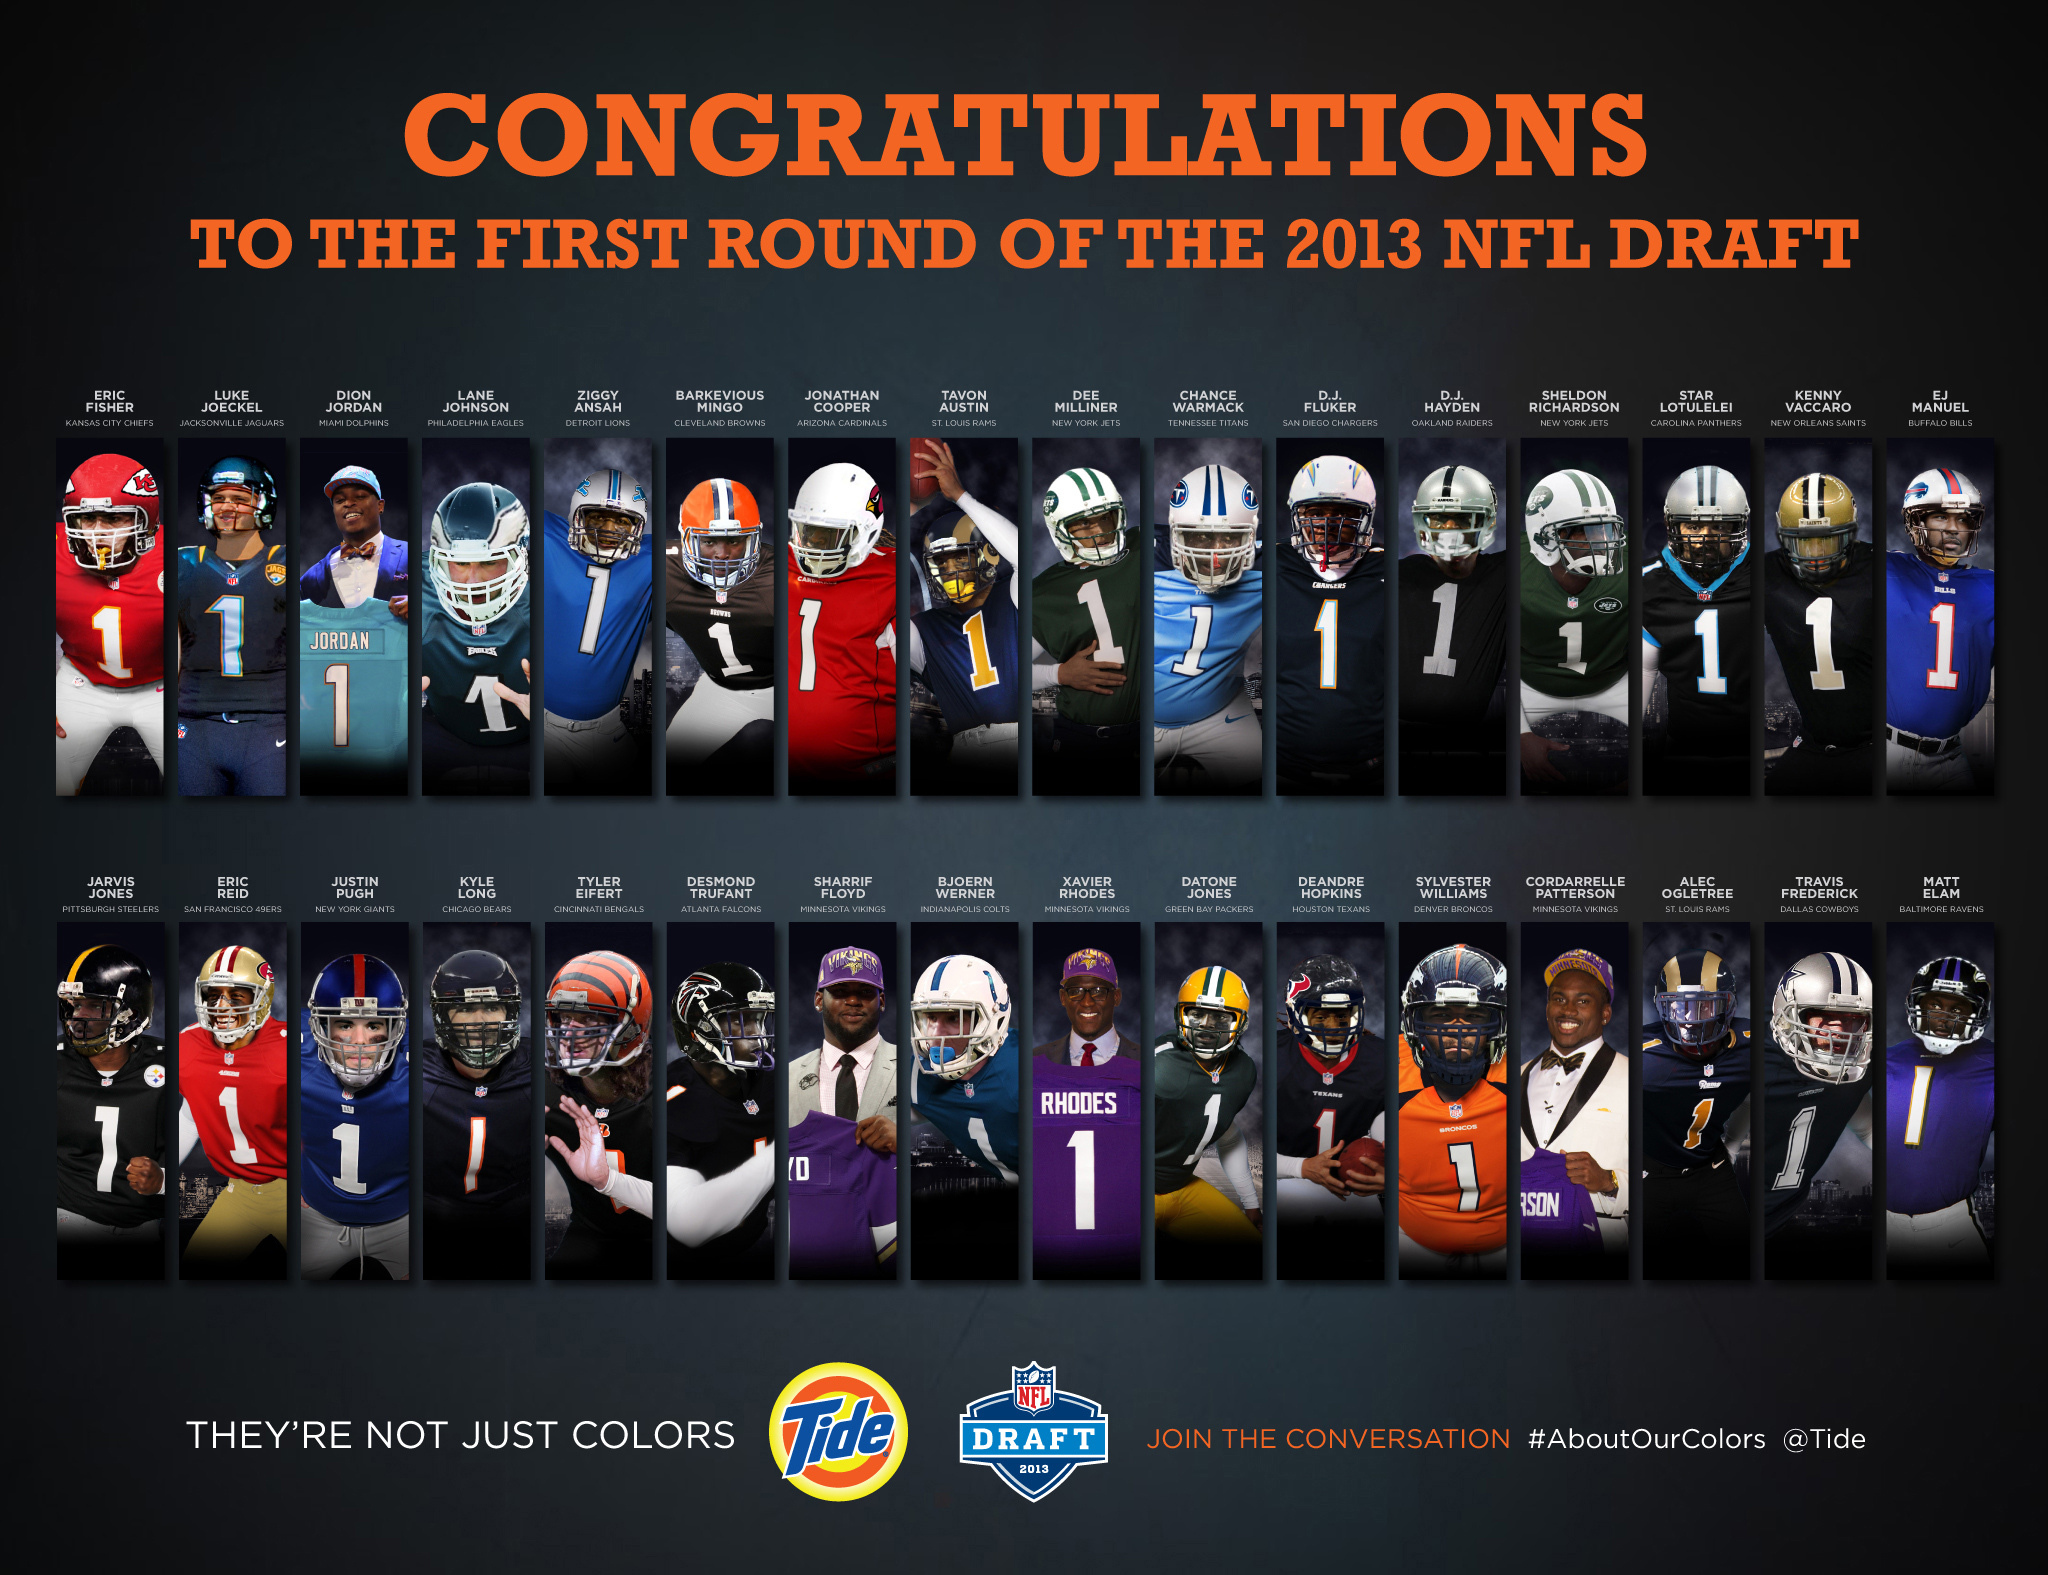 Tide, the proud keeper of your NFL team's colors, created this exclusive image of the first round picks from the 2013 NFL Draft to celebrate this exciting occasion for NFL fans. As part of the NFL Draft, Tide also created the first shareable poster of players in their new colors and delivered them via Twitter. Tide used a team of designers on Draft night to build the posters as real-time digital art. Players contracted by Tide asked fans to tweet at them about their new colors via #AboutOurColors.